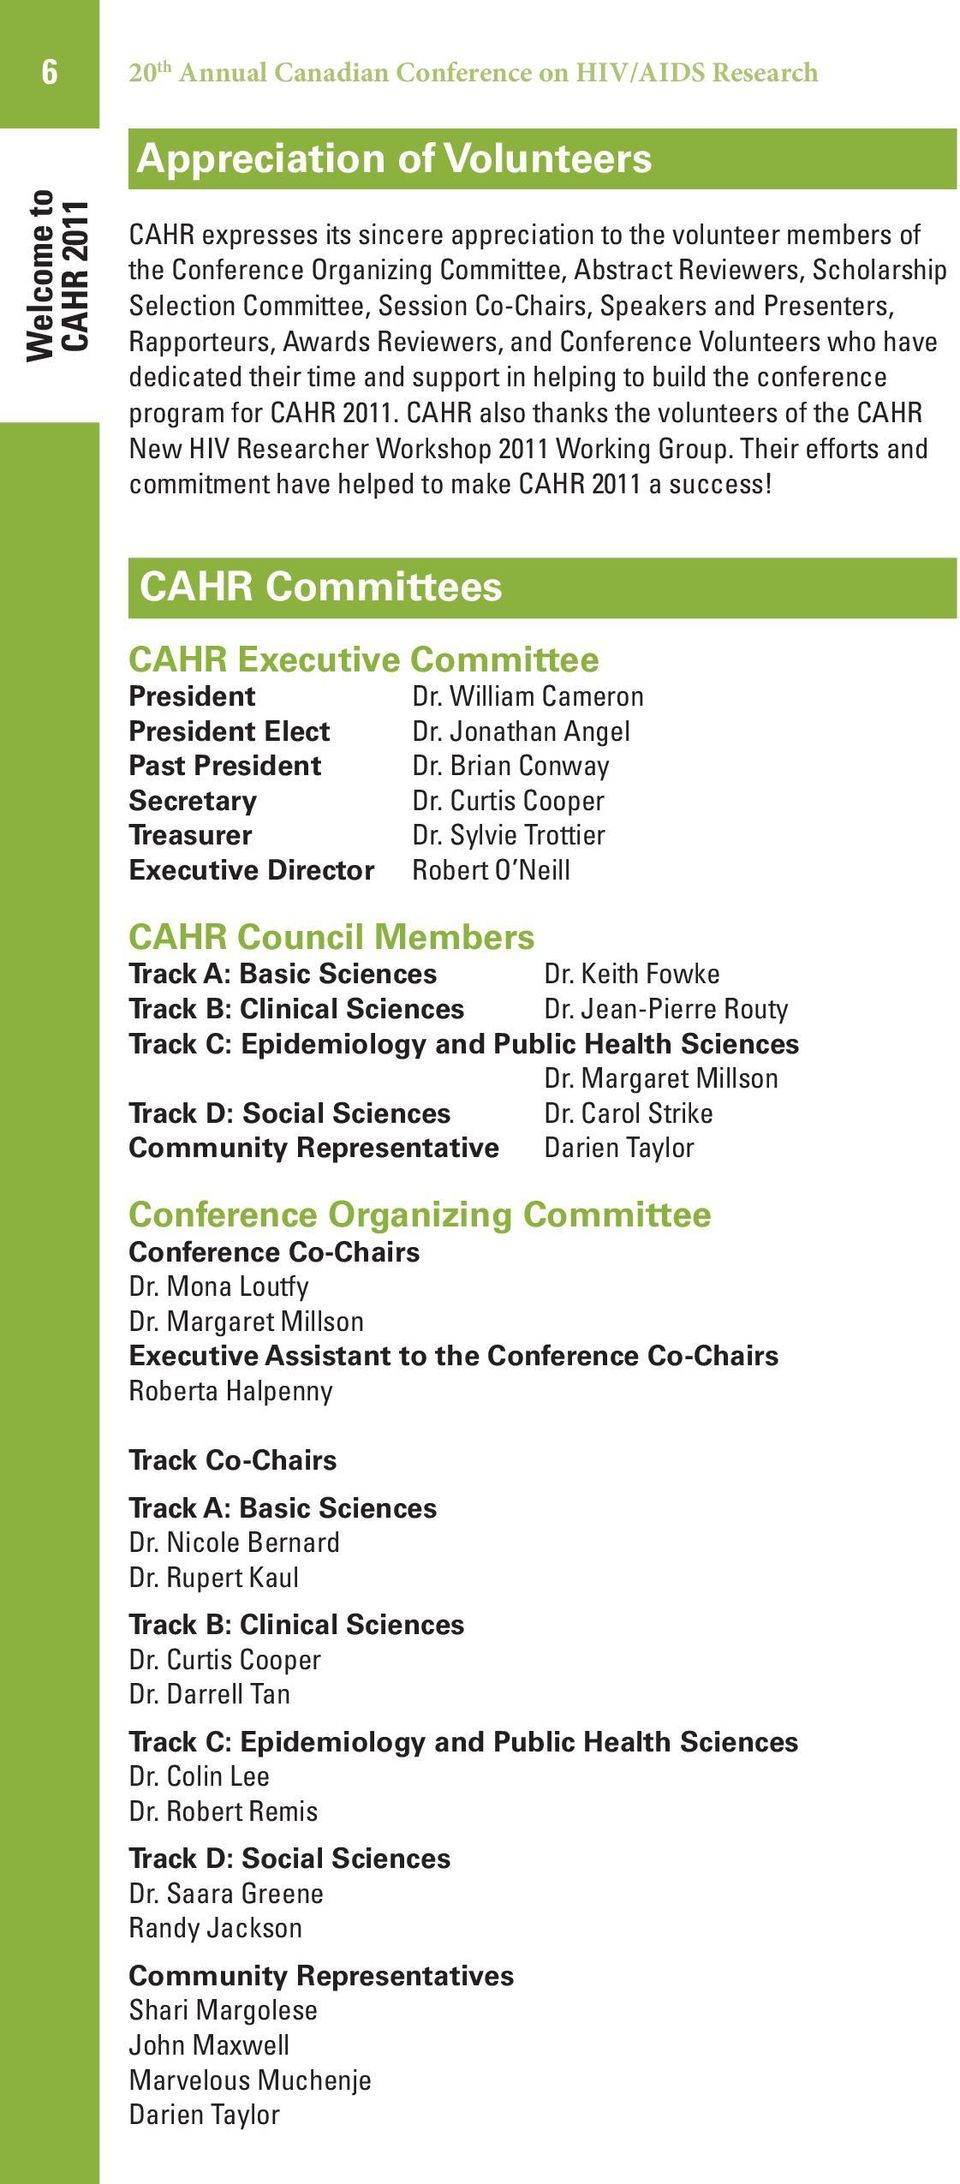 support in helping to build the conference program for CAHR 2011. CAHR also thanks the volunteers of the CAHR New HIV Researcher Workshop 2011 Working Group.